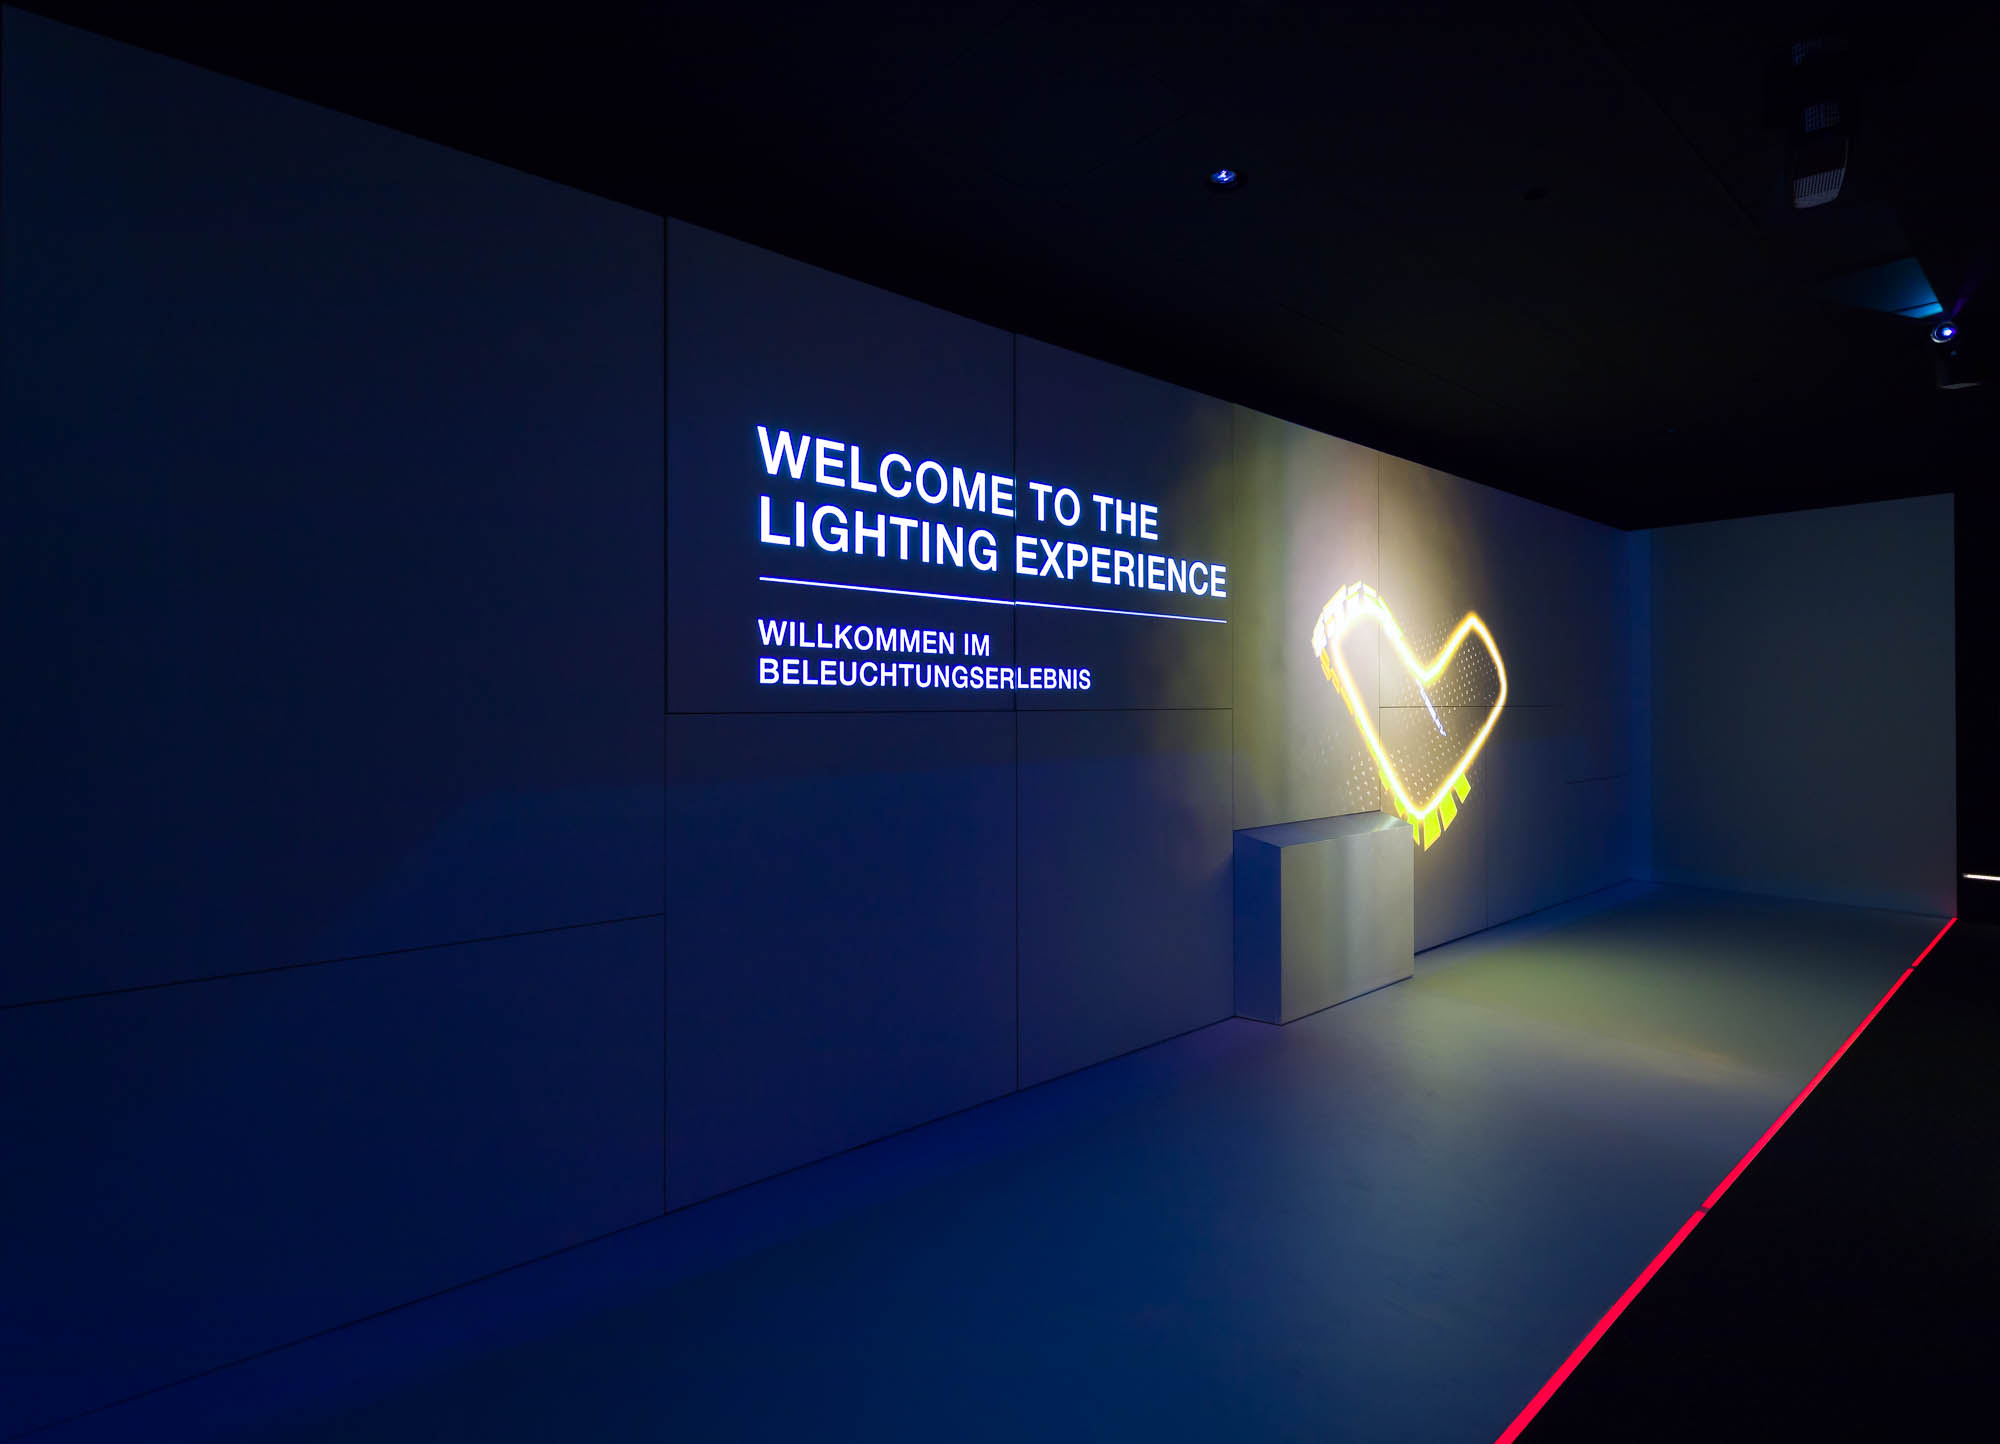 Lighting Experience Space: Light projection welcomes visitors